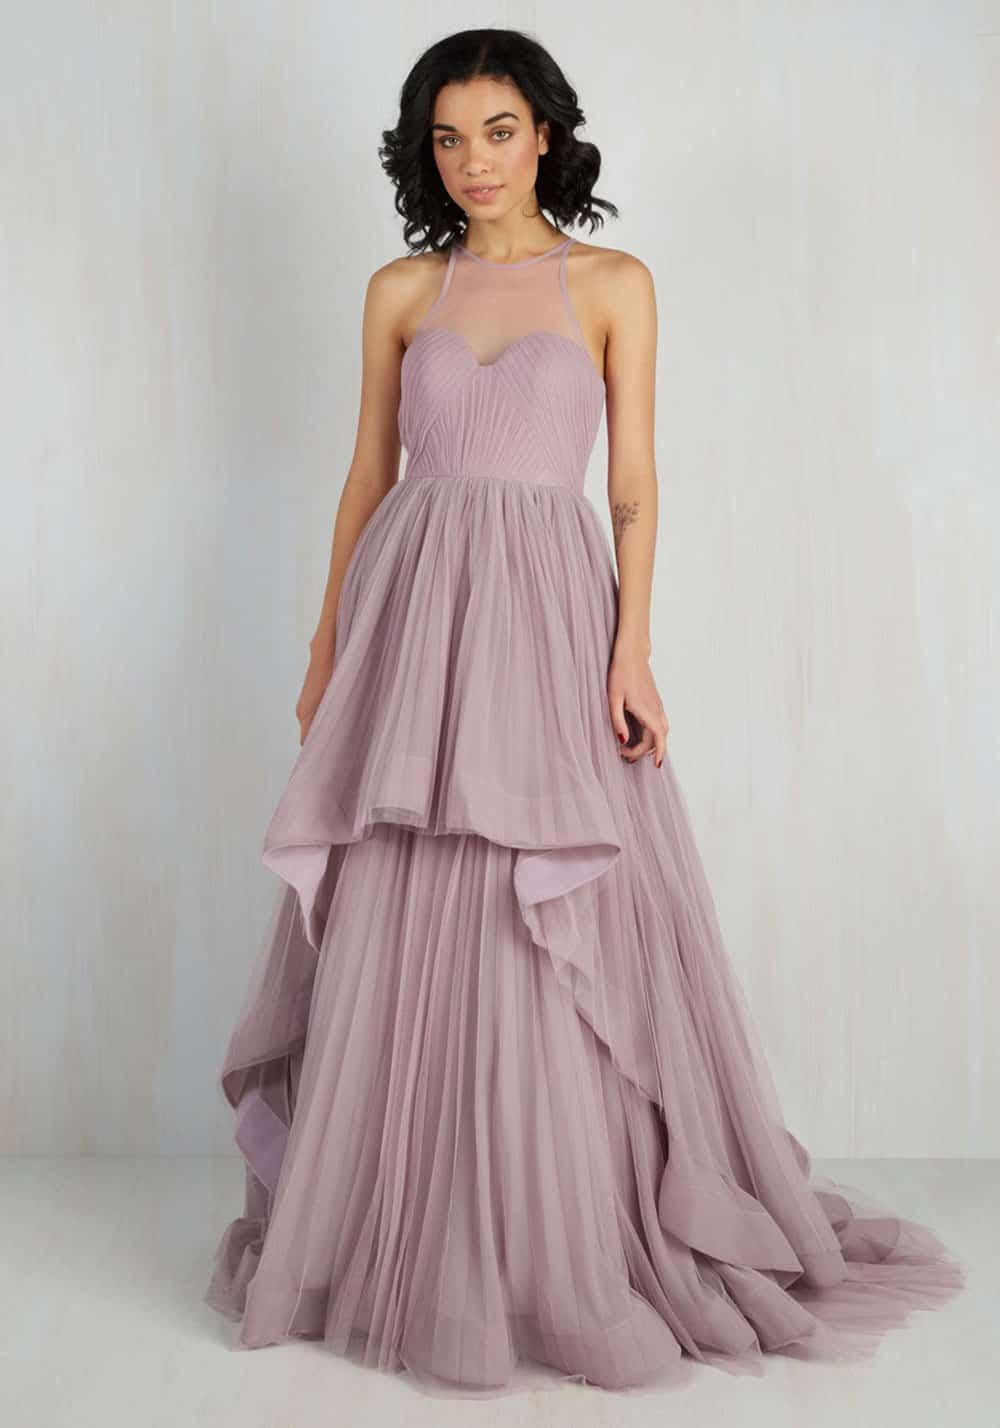 Purple toned wedding dress from Modcloth.